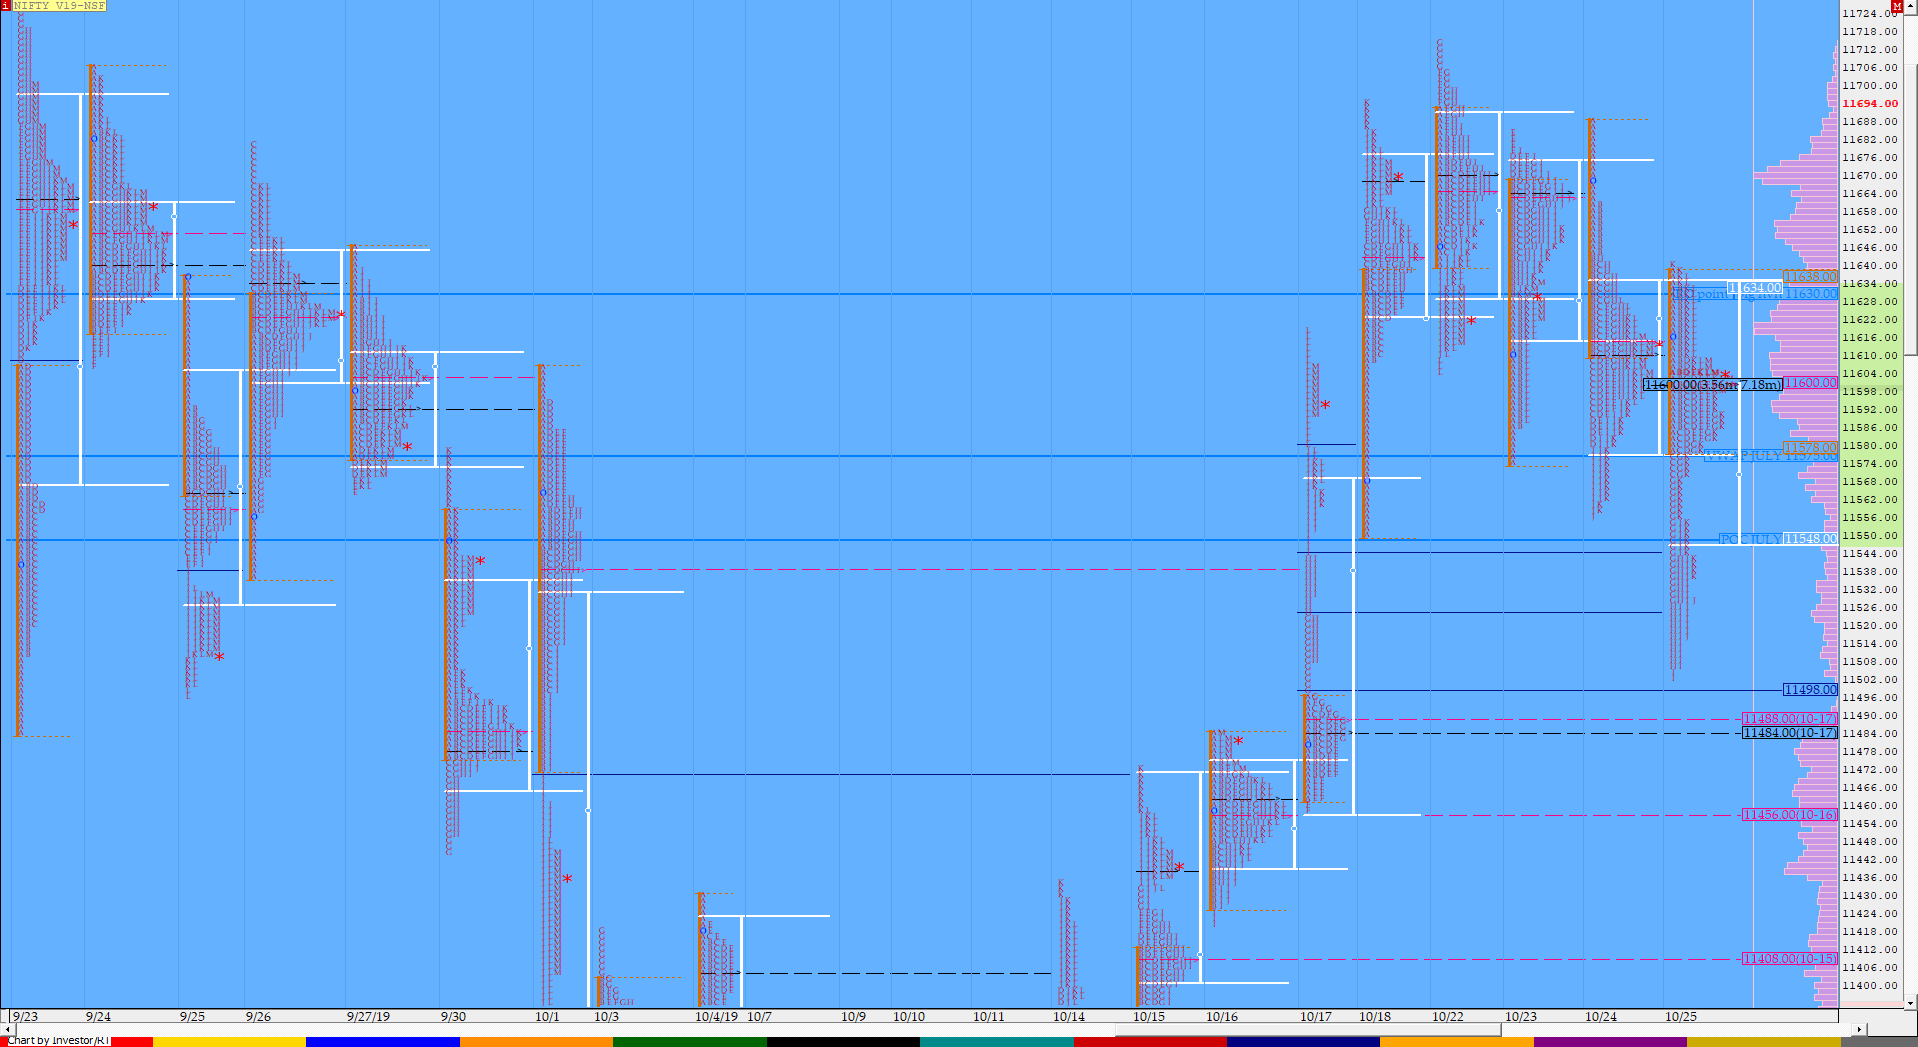 Market Profile Analysis dated 25th October 2